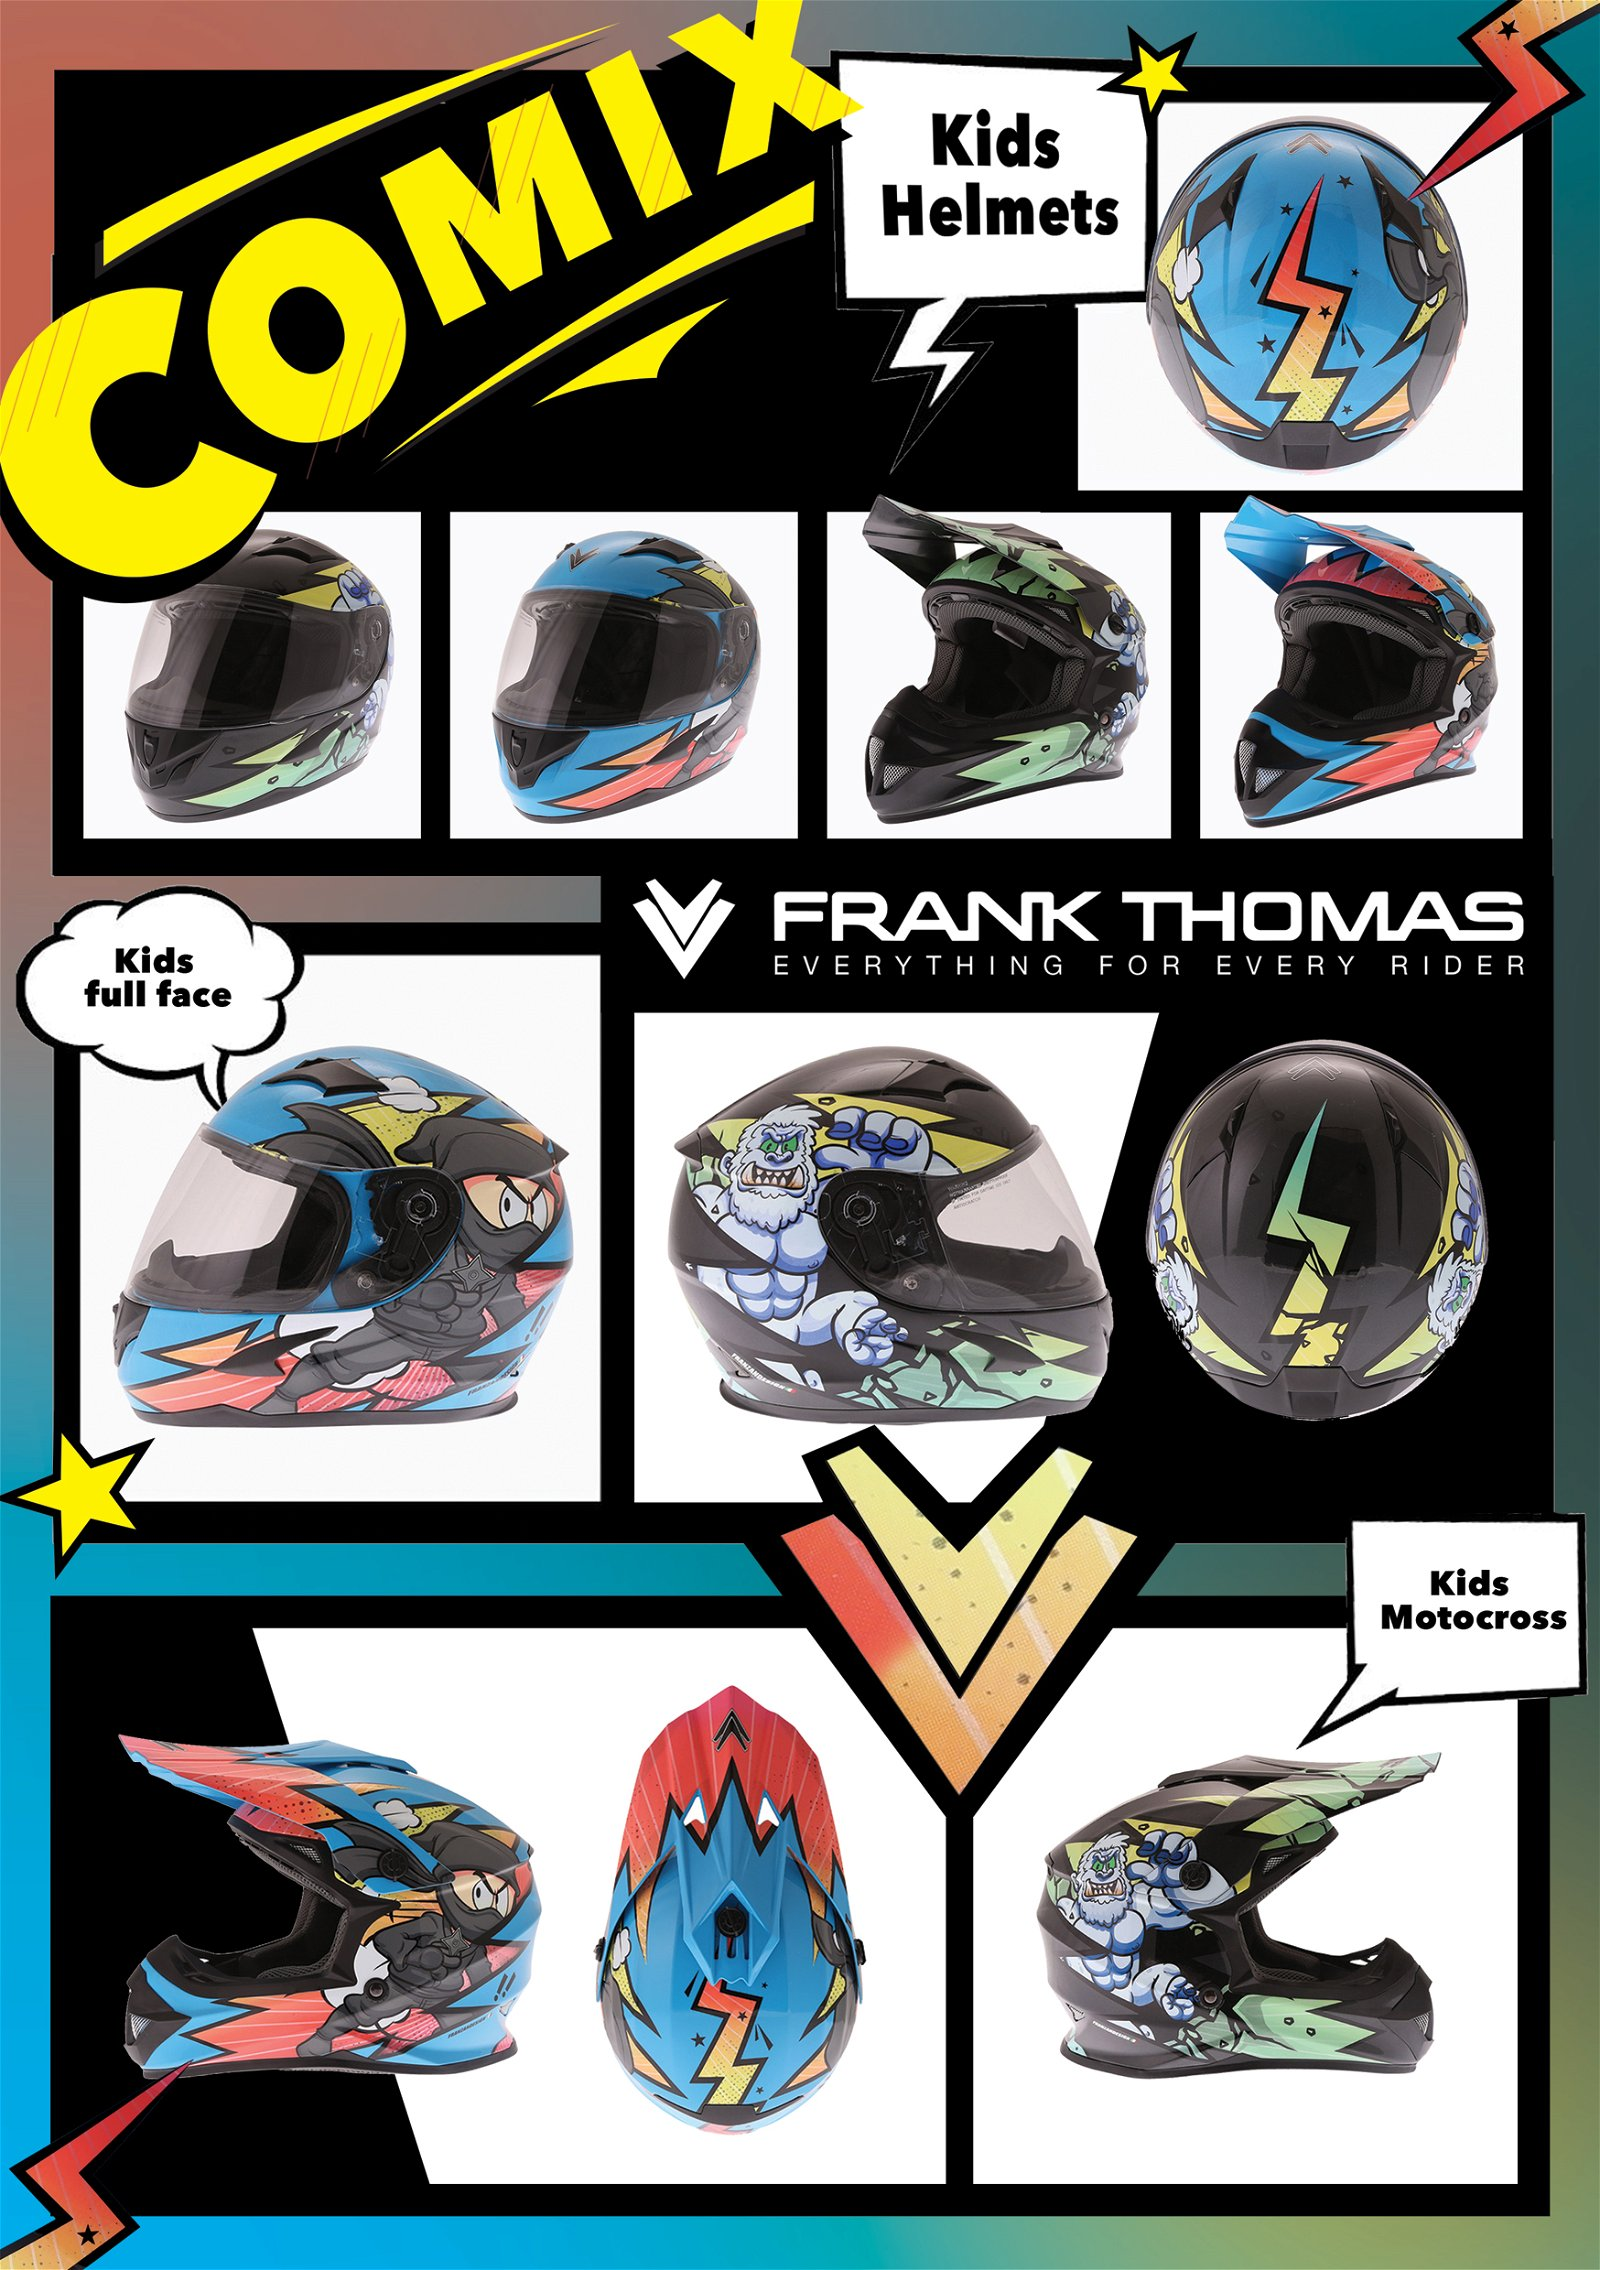 The Frank Thomas Comix Collection